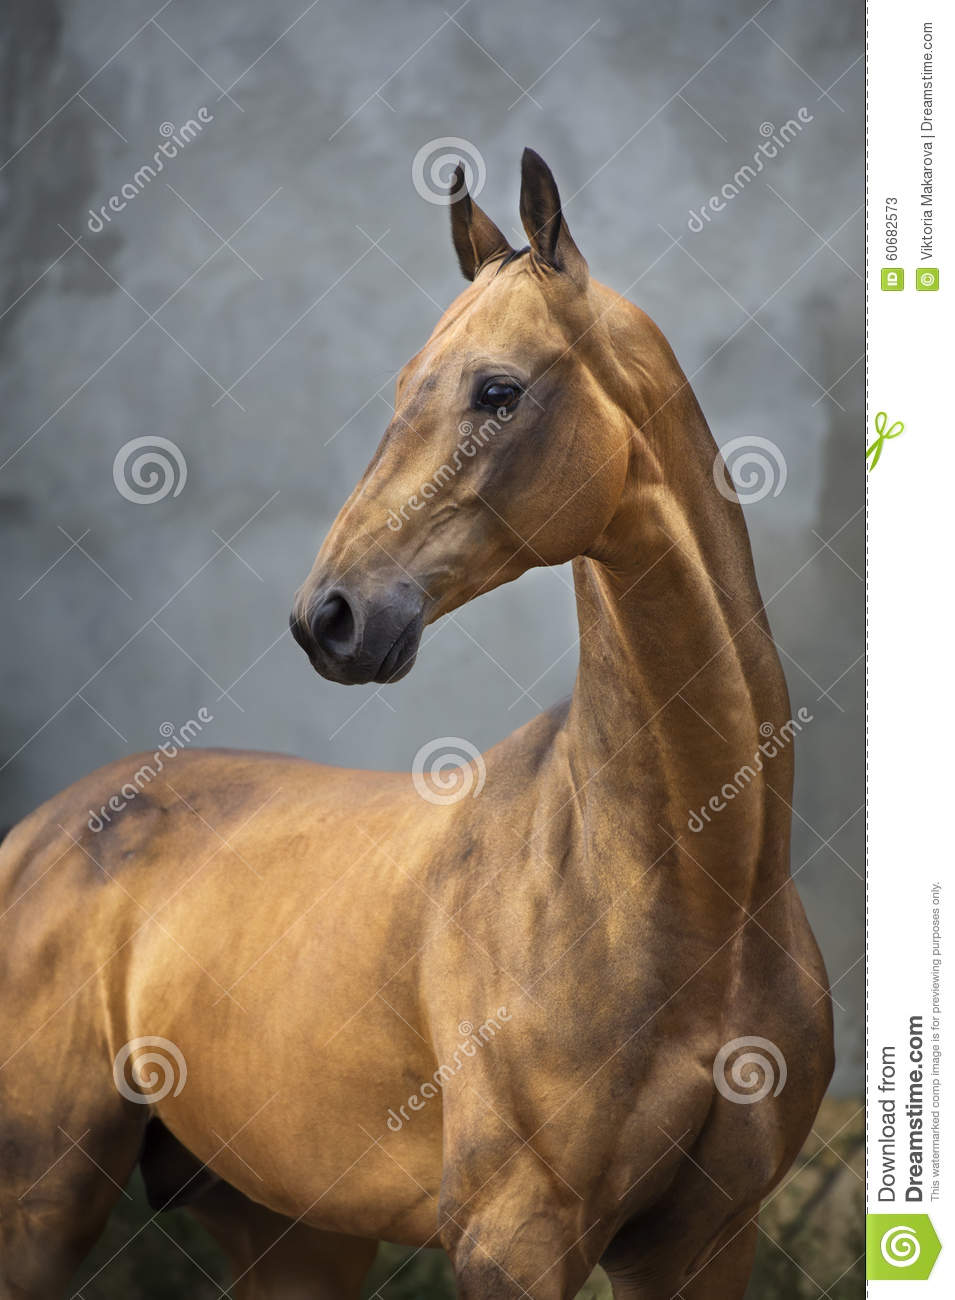 Golden bay akhal-teke horse stallion on the grey wall background